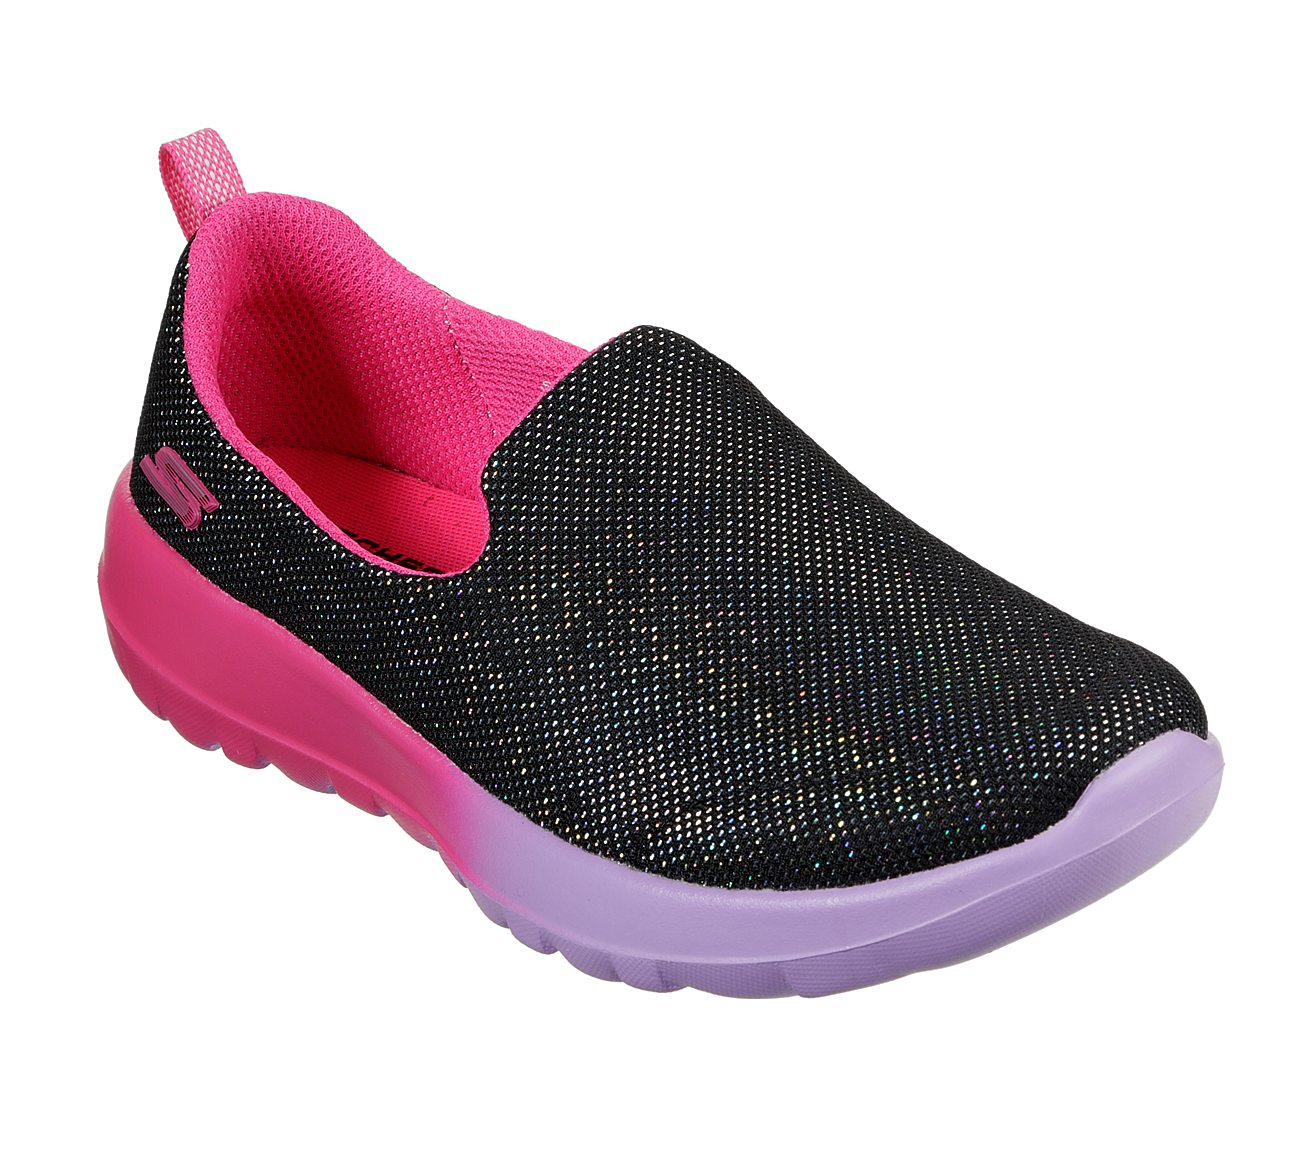 Skechers Skechers Go Walk 600 with Air Cooled Goga Mat in